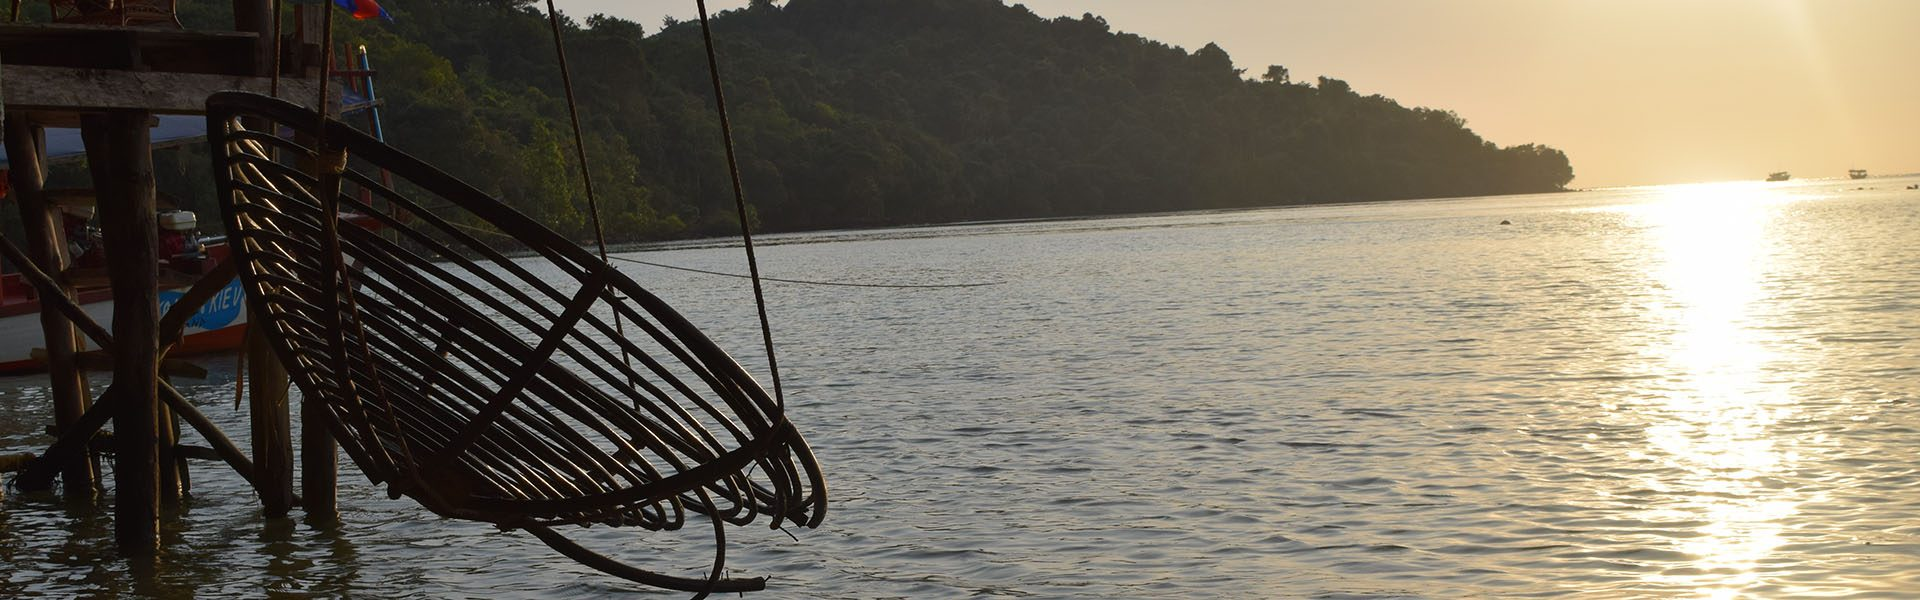 A wooden basket swing over the water in a sunset on koh ta kiev island